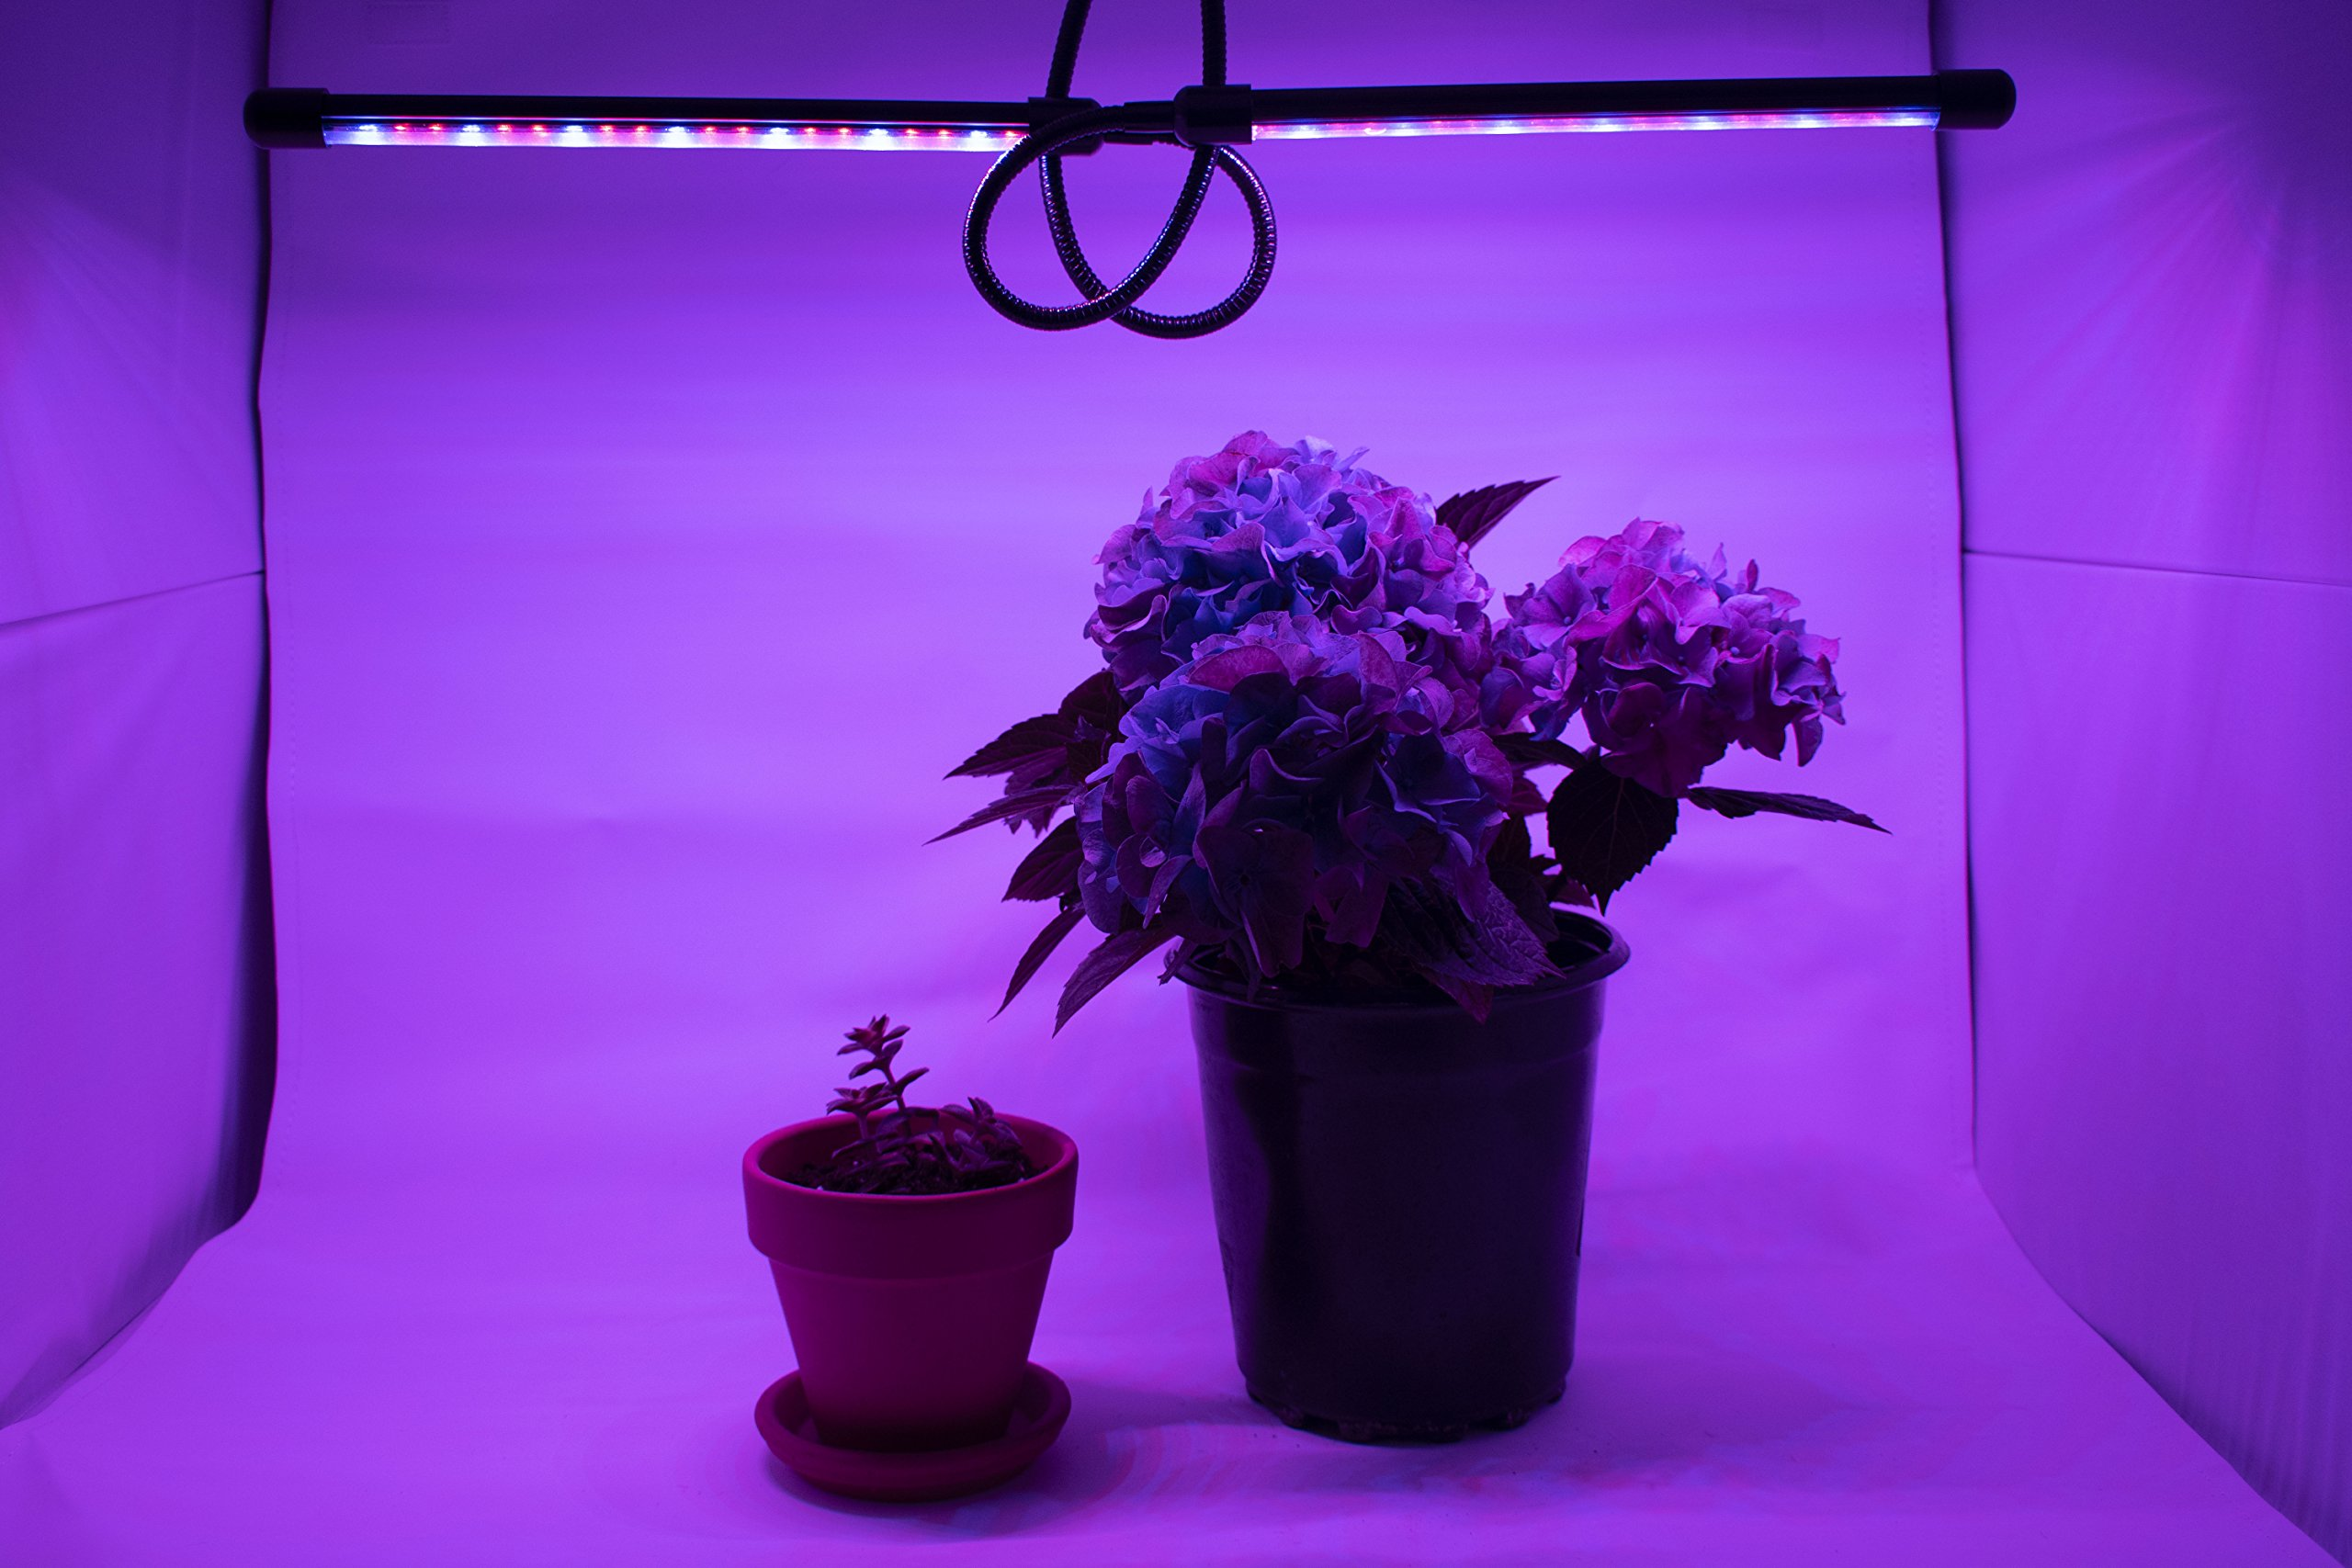 LED Grow Light Kit RGB fixture with clamp (grow light blue, red and purple) by LED Grow Light (Image #6)